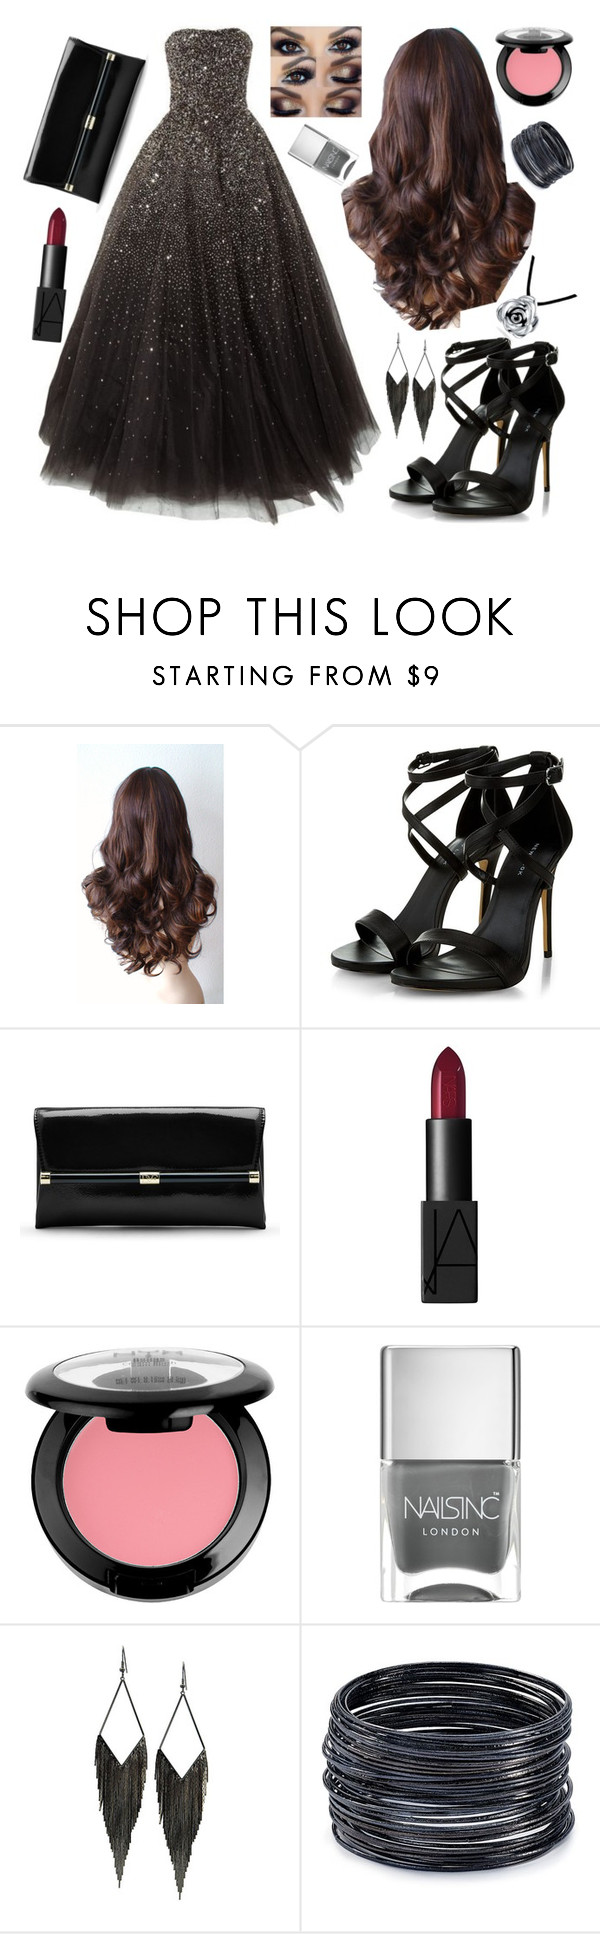 """""""Untitled #87"""" by stilinskiismybatman ❤ liked on Polyvore featuring CO, Diane Von Furstenberg, NARS Cosmetics, NYX, Nails Inc., GUESS, ABS by Allen Schwartz and Bling Jewelry"""